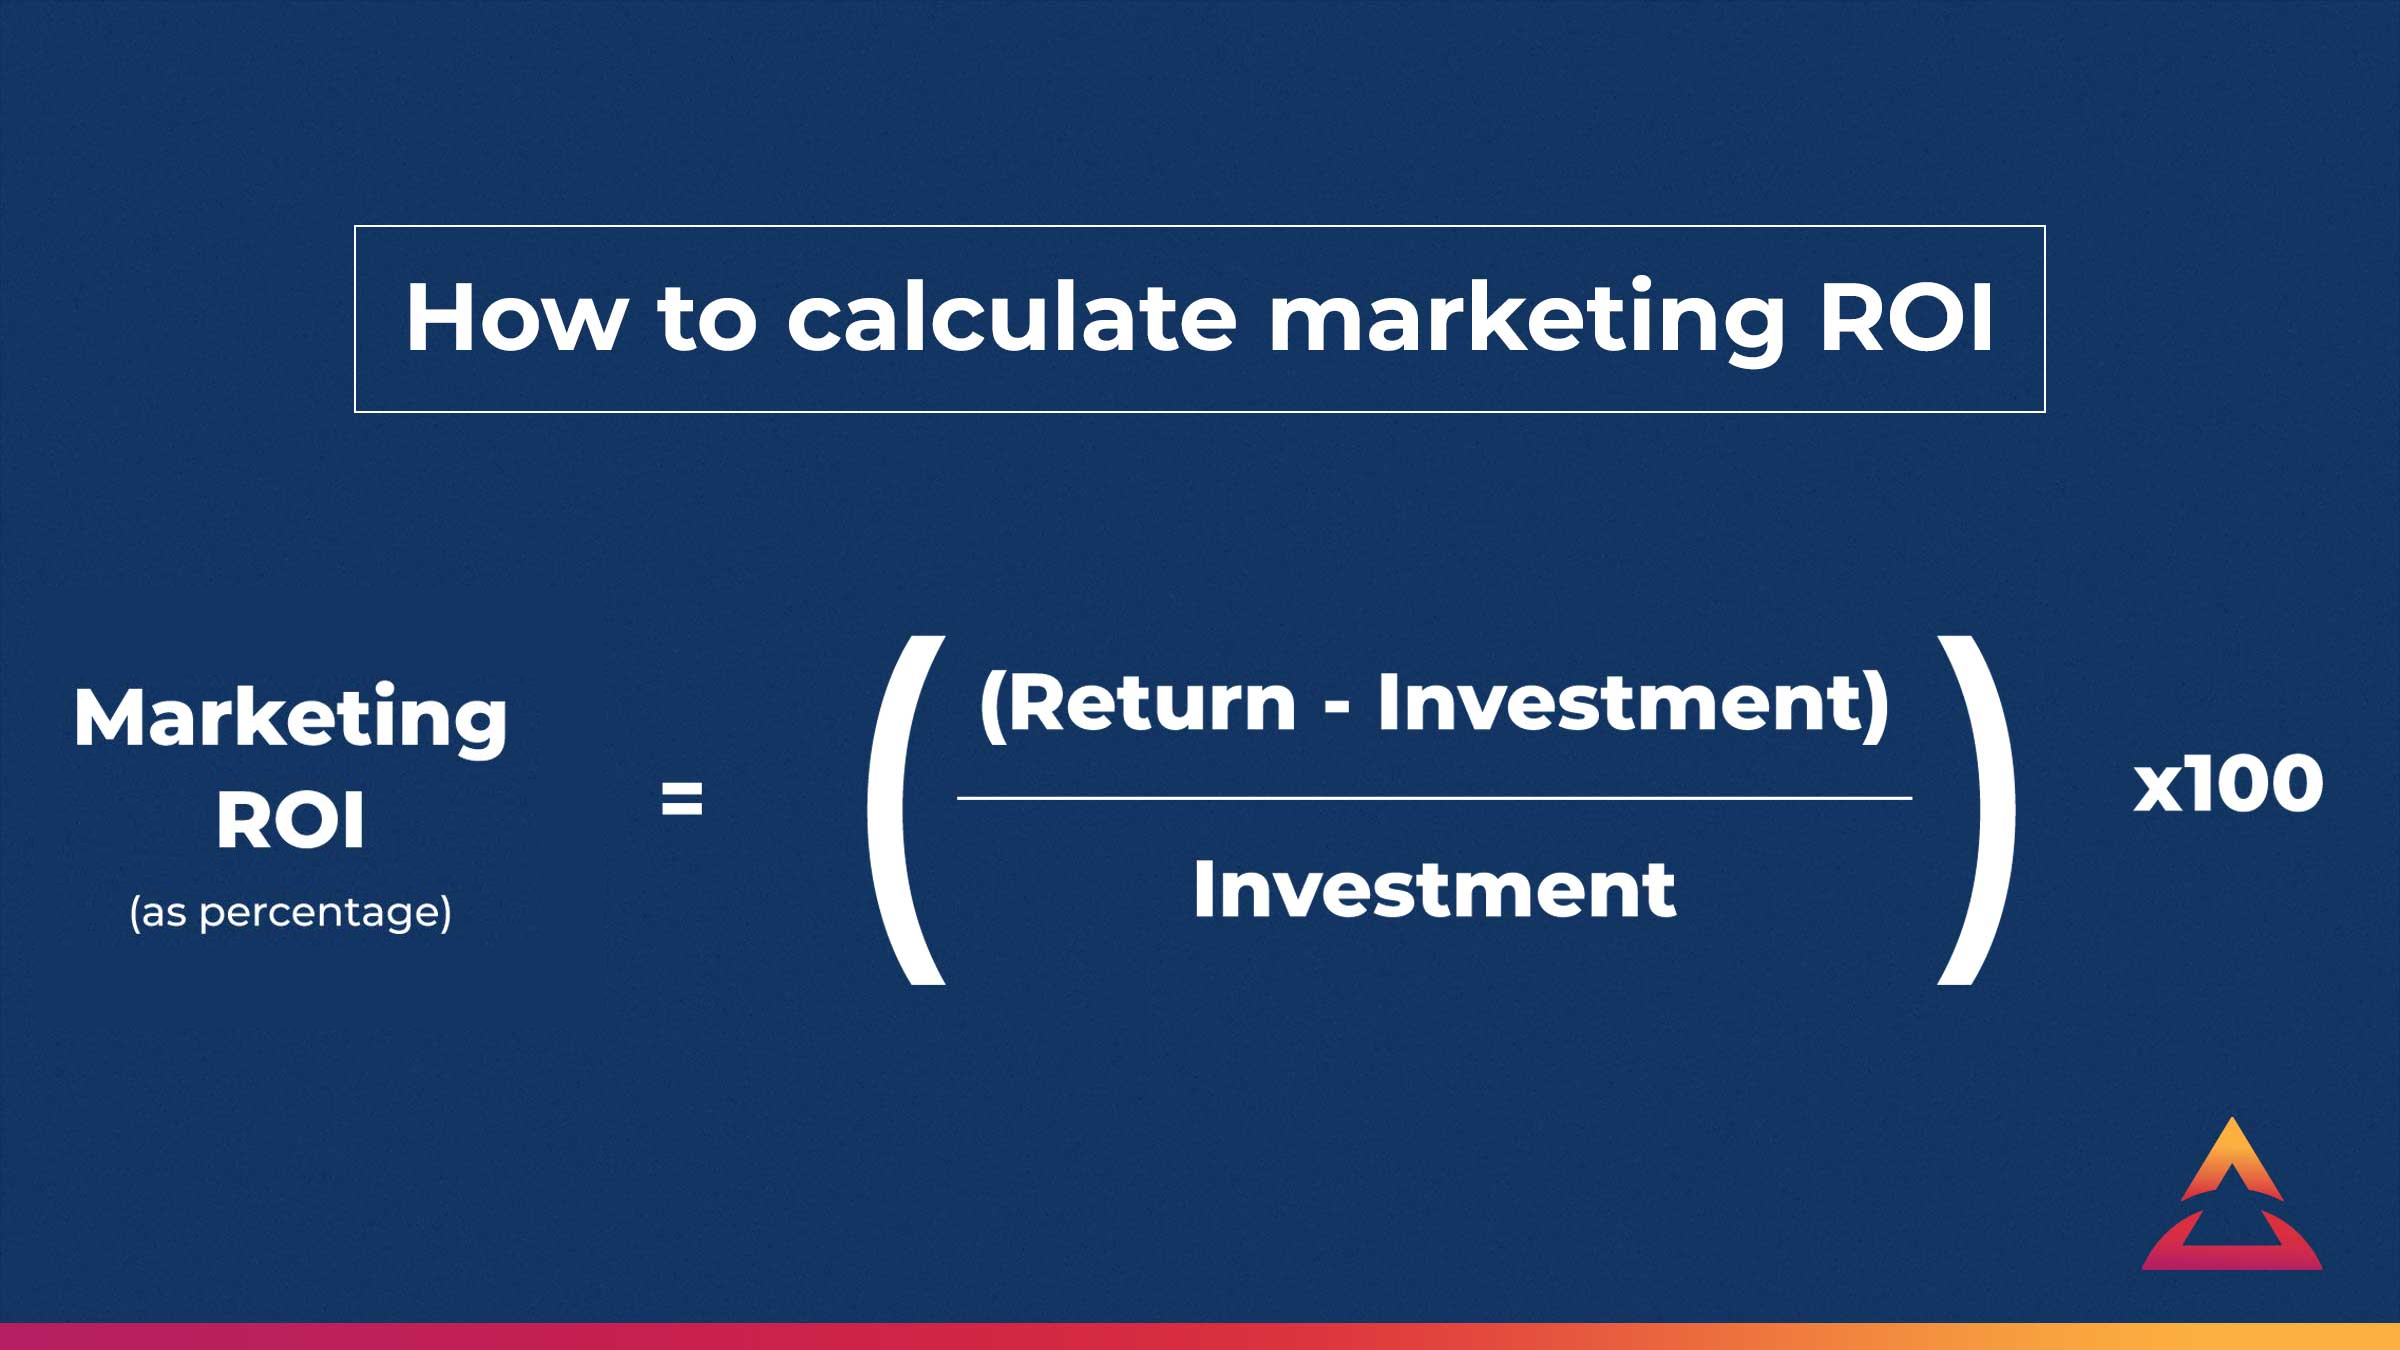 How to calculate marketing ROI for business